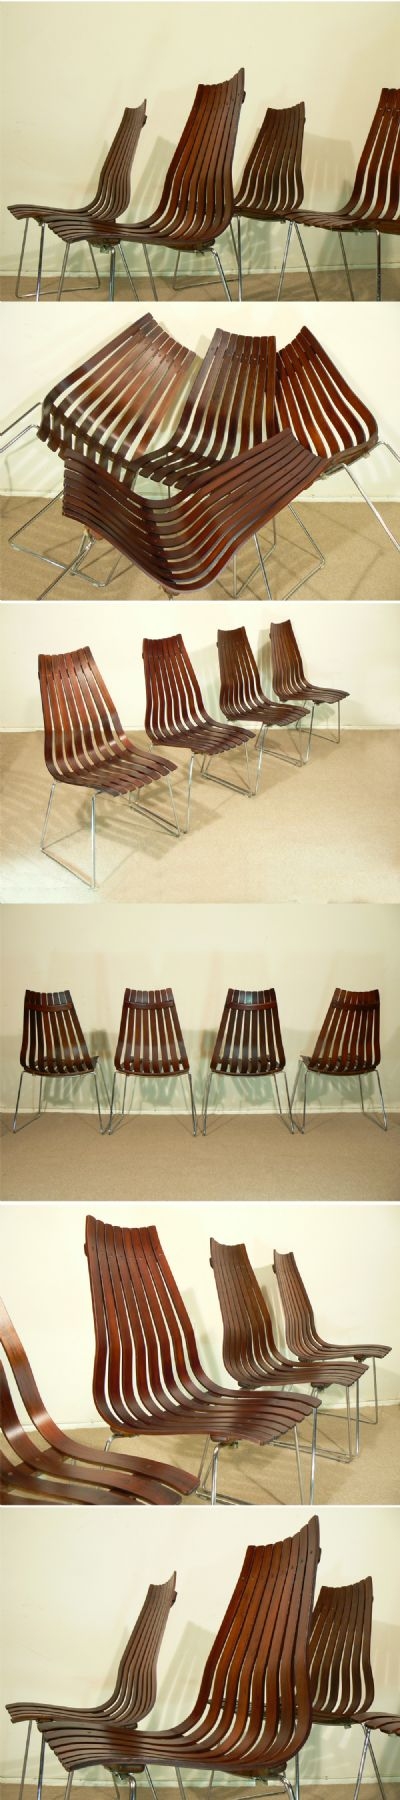 Set of four rosewood 'Scandia' senior dining chairs by Hans Brattrud for Hove mobler, c1960s. Originally designed in the 1950's, this iconic chair is now out of production in rosewood.